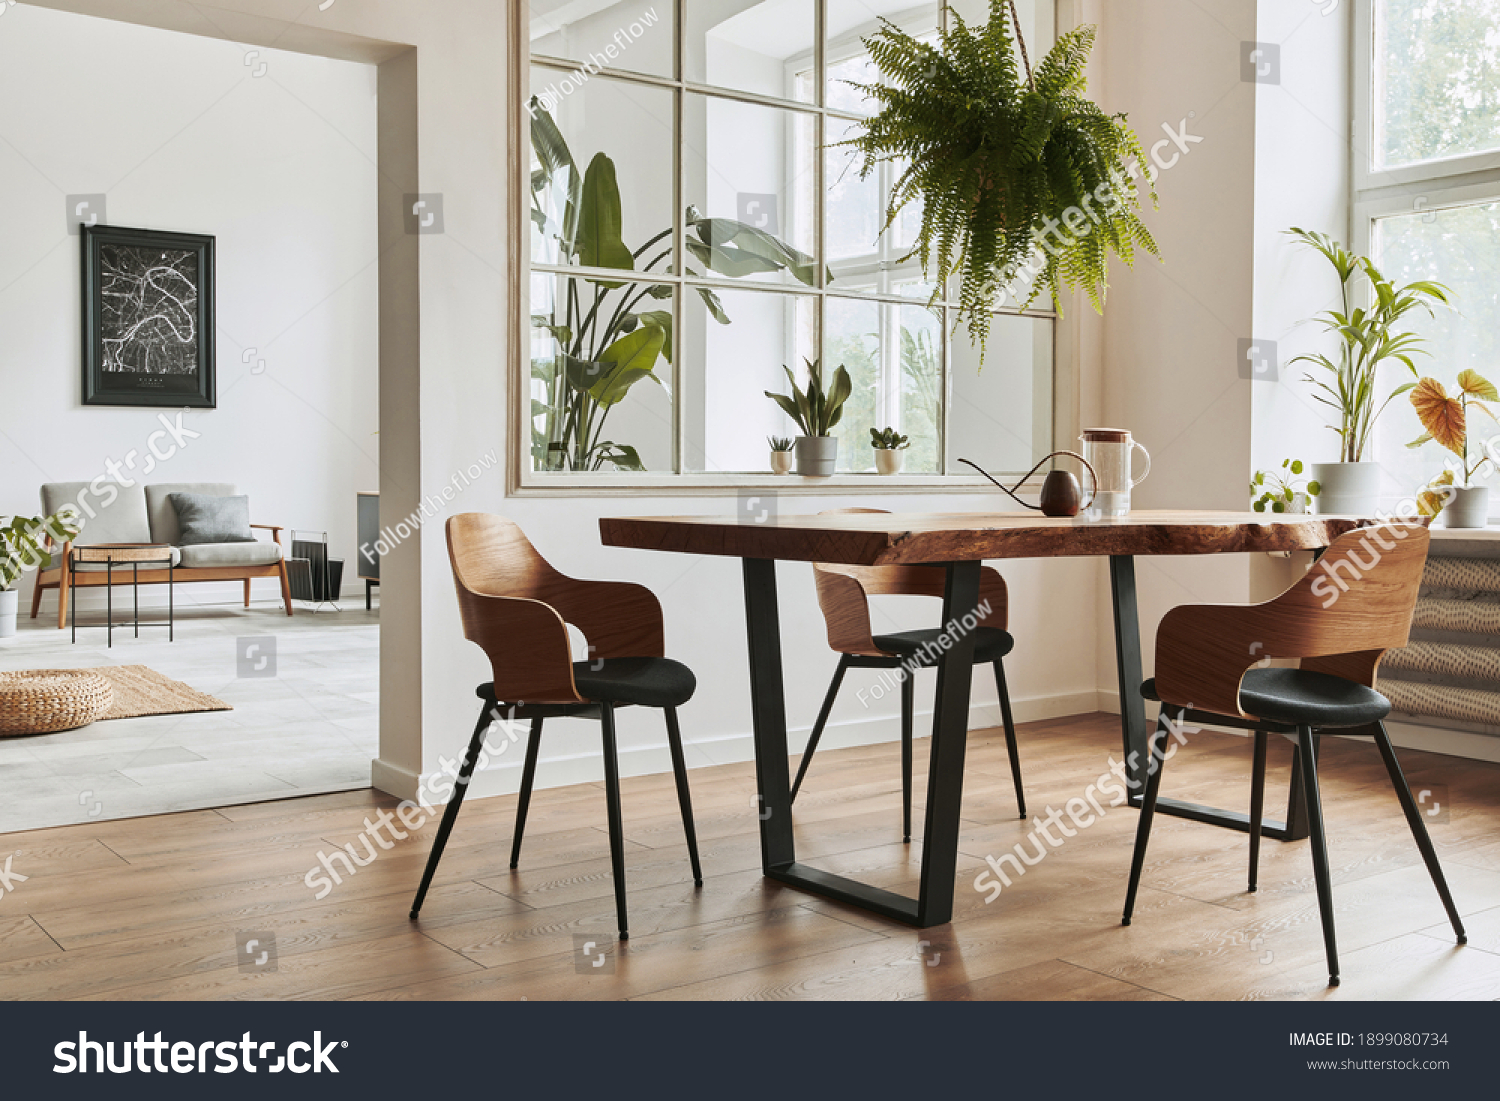 Stylish and botany interior of dining room with design craft wooden table, chairs, furniture, a lof of plants, window, poster map and elegant accessories in modern home decor. Template. #1899080734